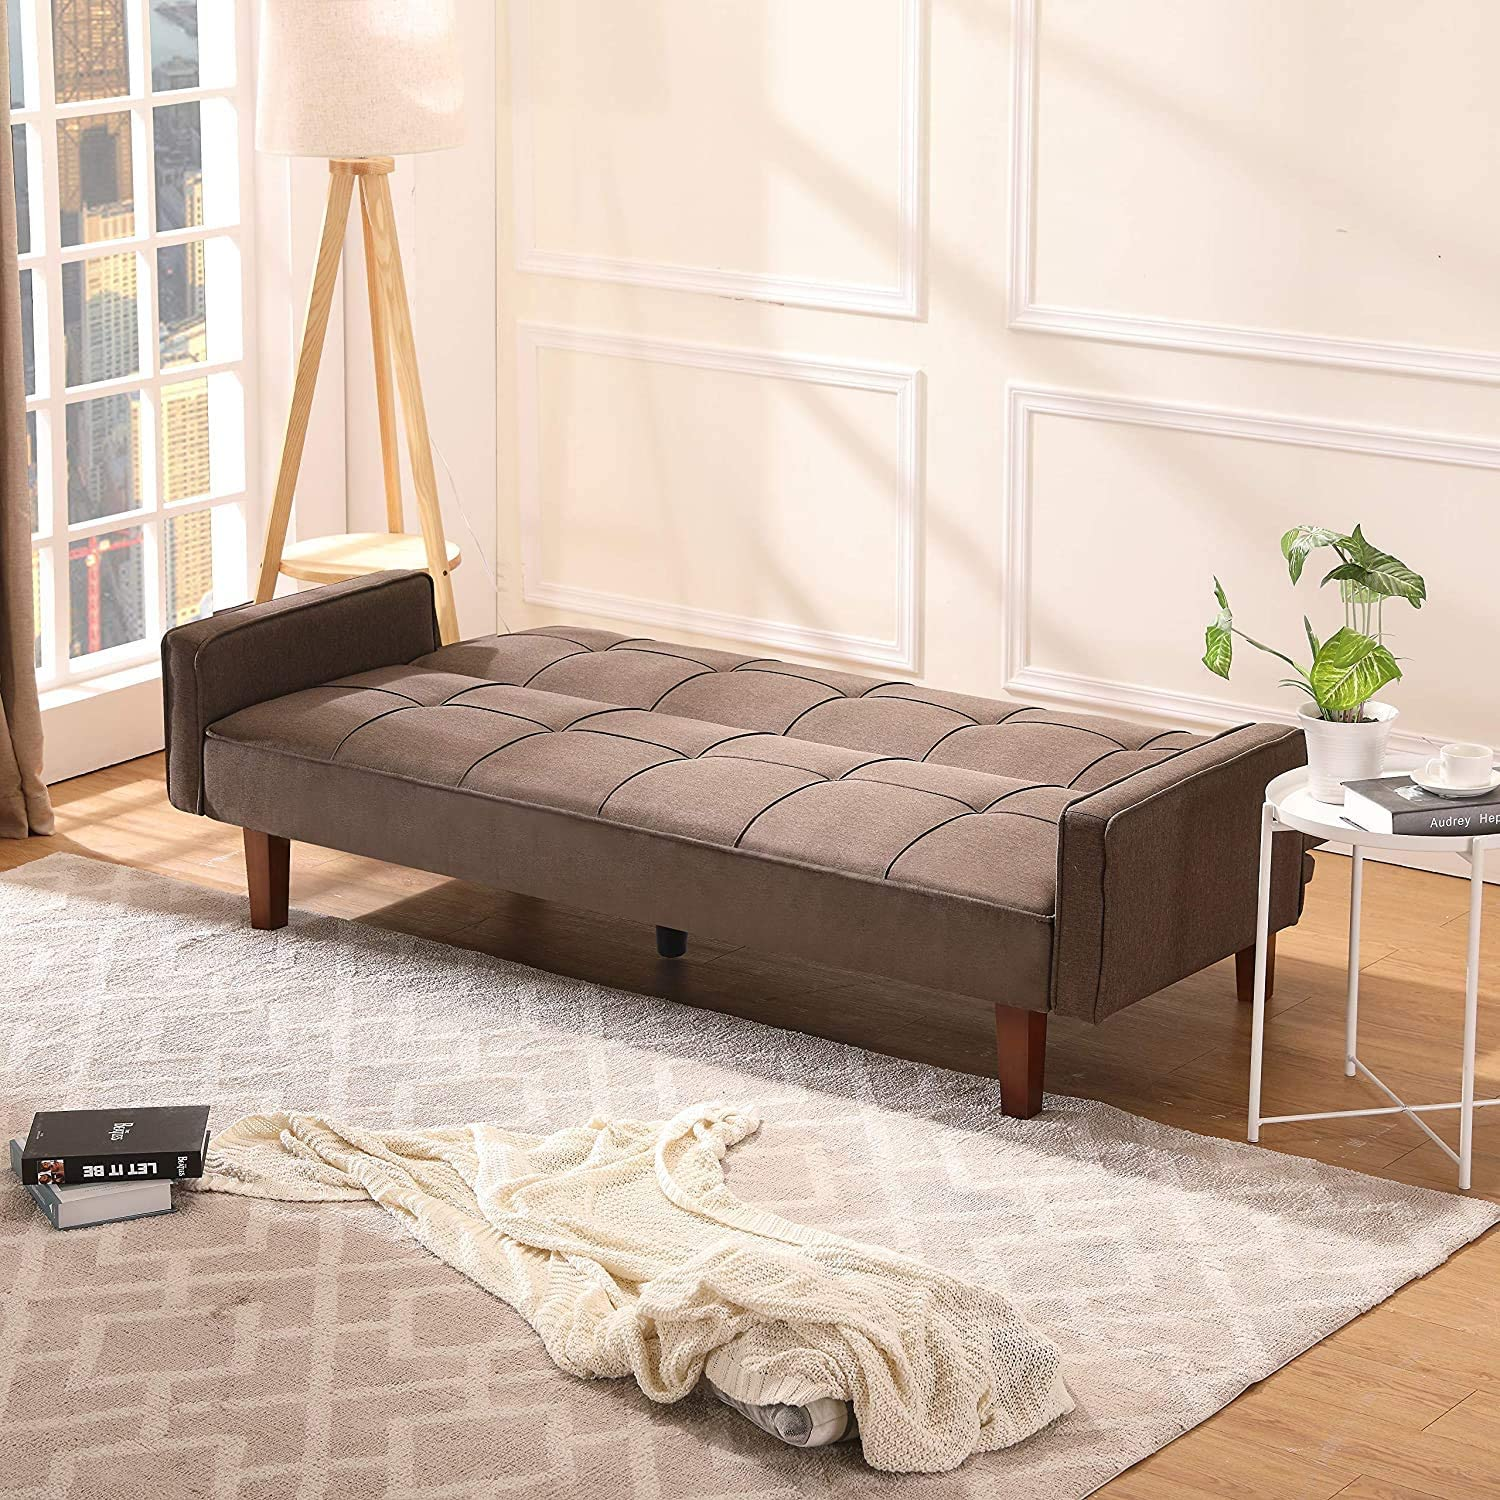 Convertible Recliner Lounge Futon Couch Linen Fabric Sofa with Wood Legs for Small Room Apartment Brown LinkRomat Modern Bed